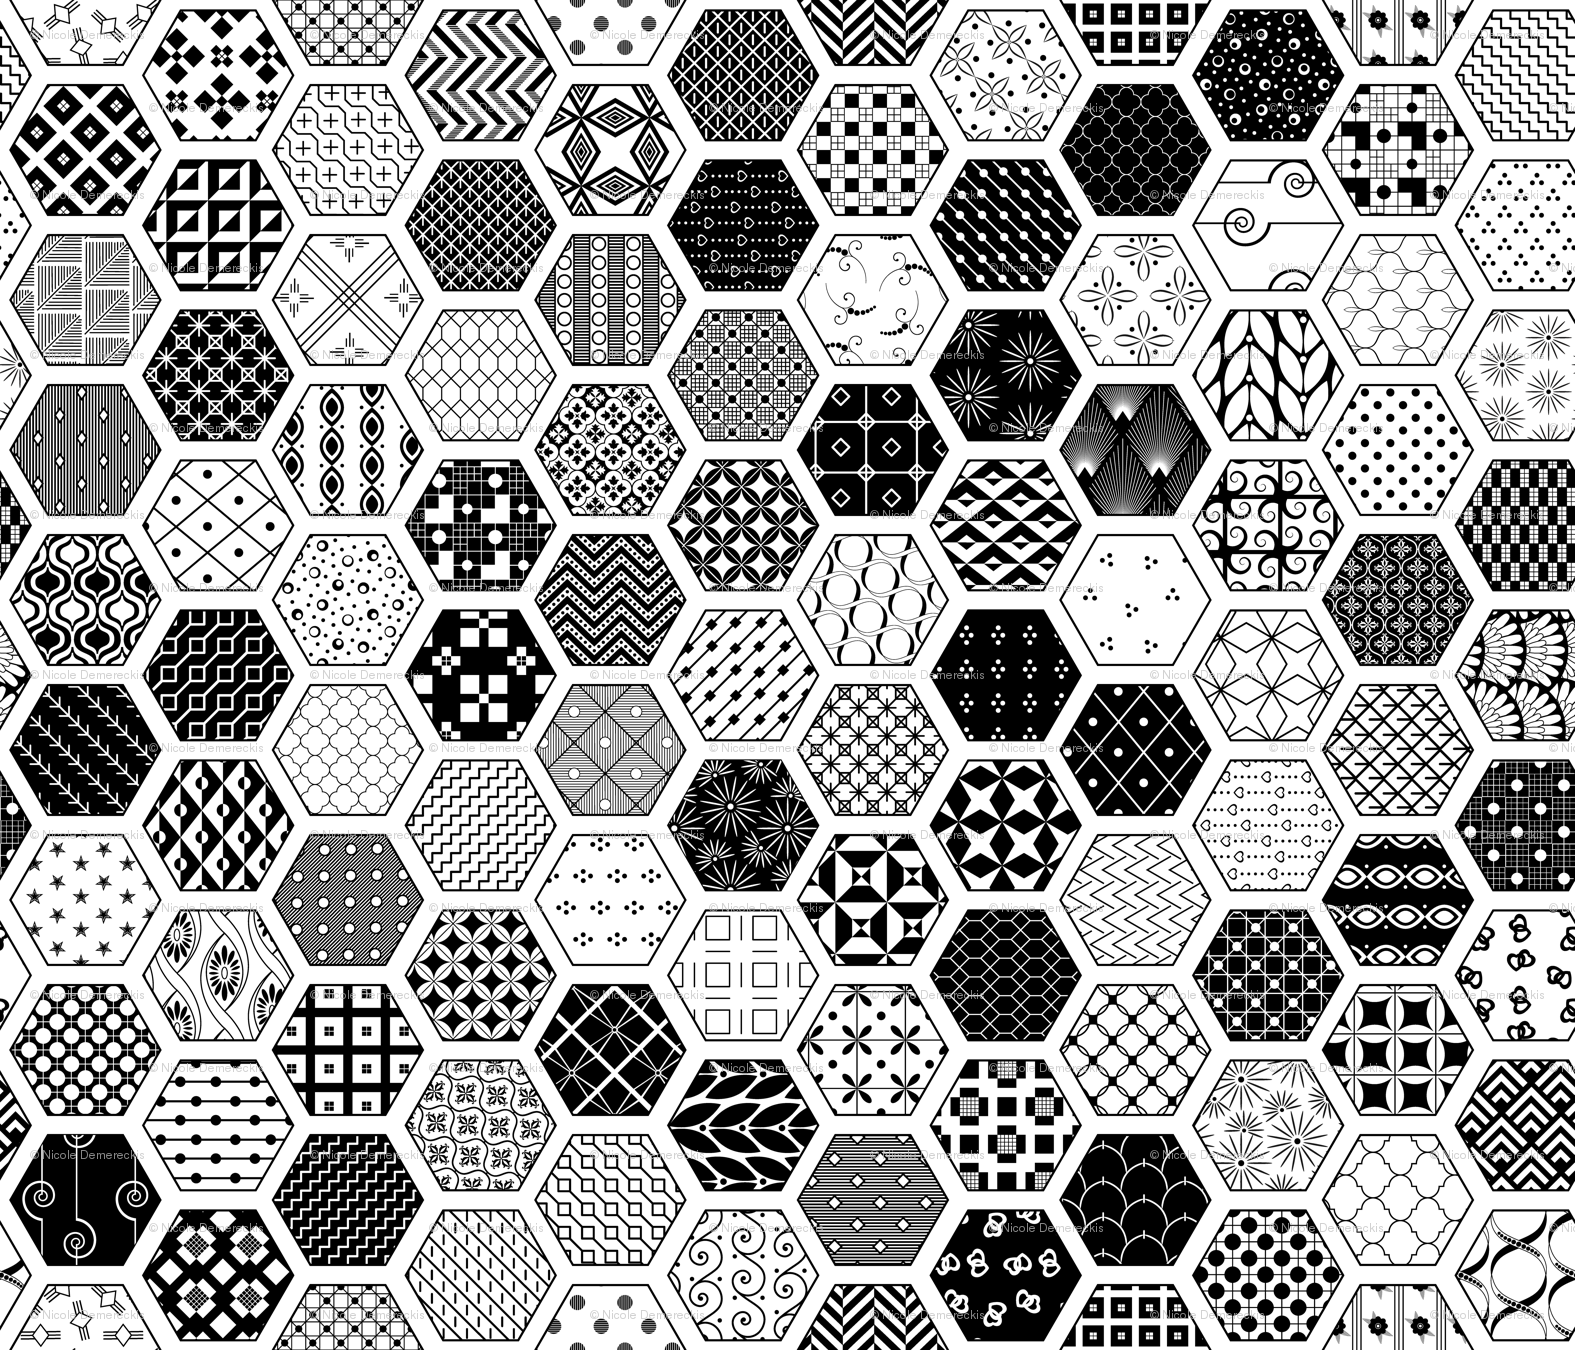 Hexagon modern cheater quilt white black wallpaper wickedrefined spoonflower